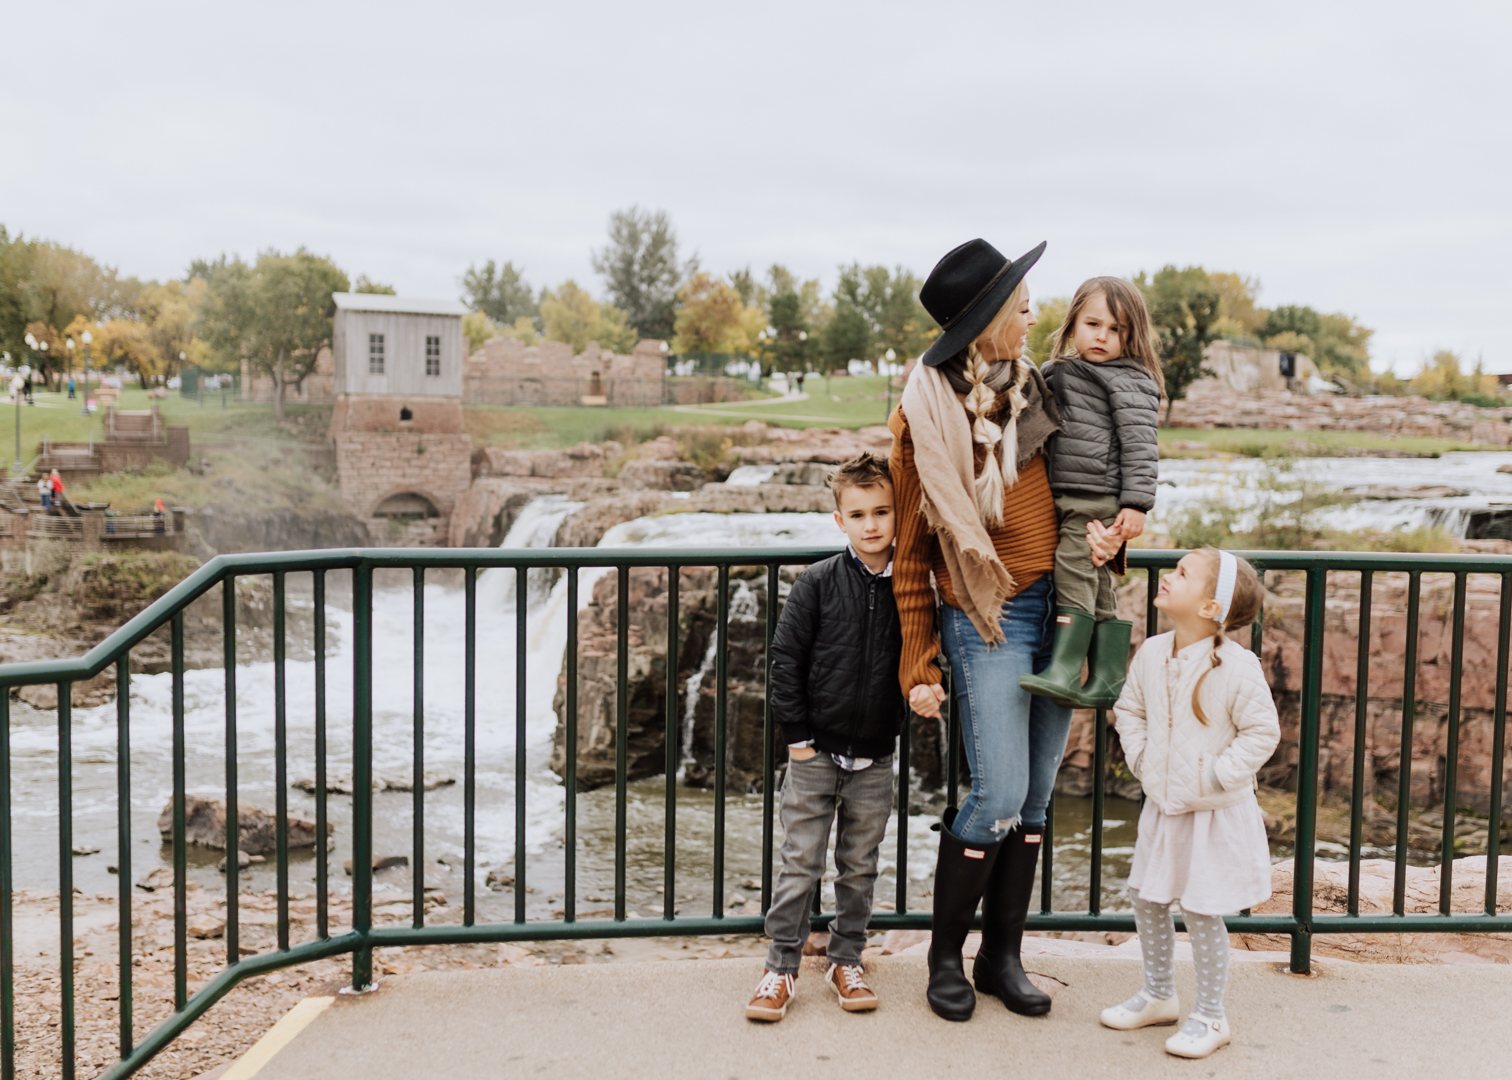 our family at falls park in south dakota | thelovedesignedlife.com #seasonsofsodak #sweaterweather #familytravel